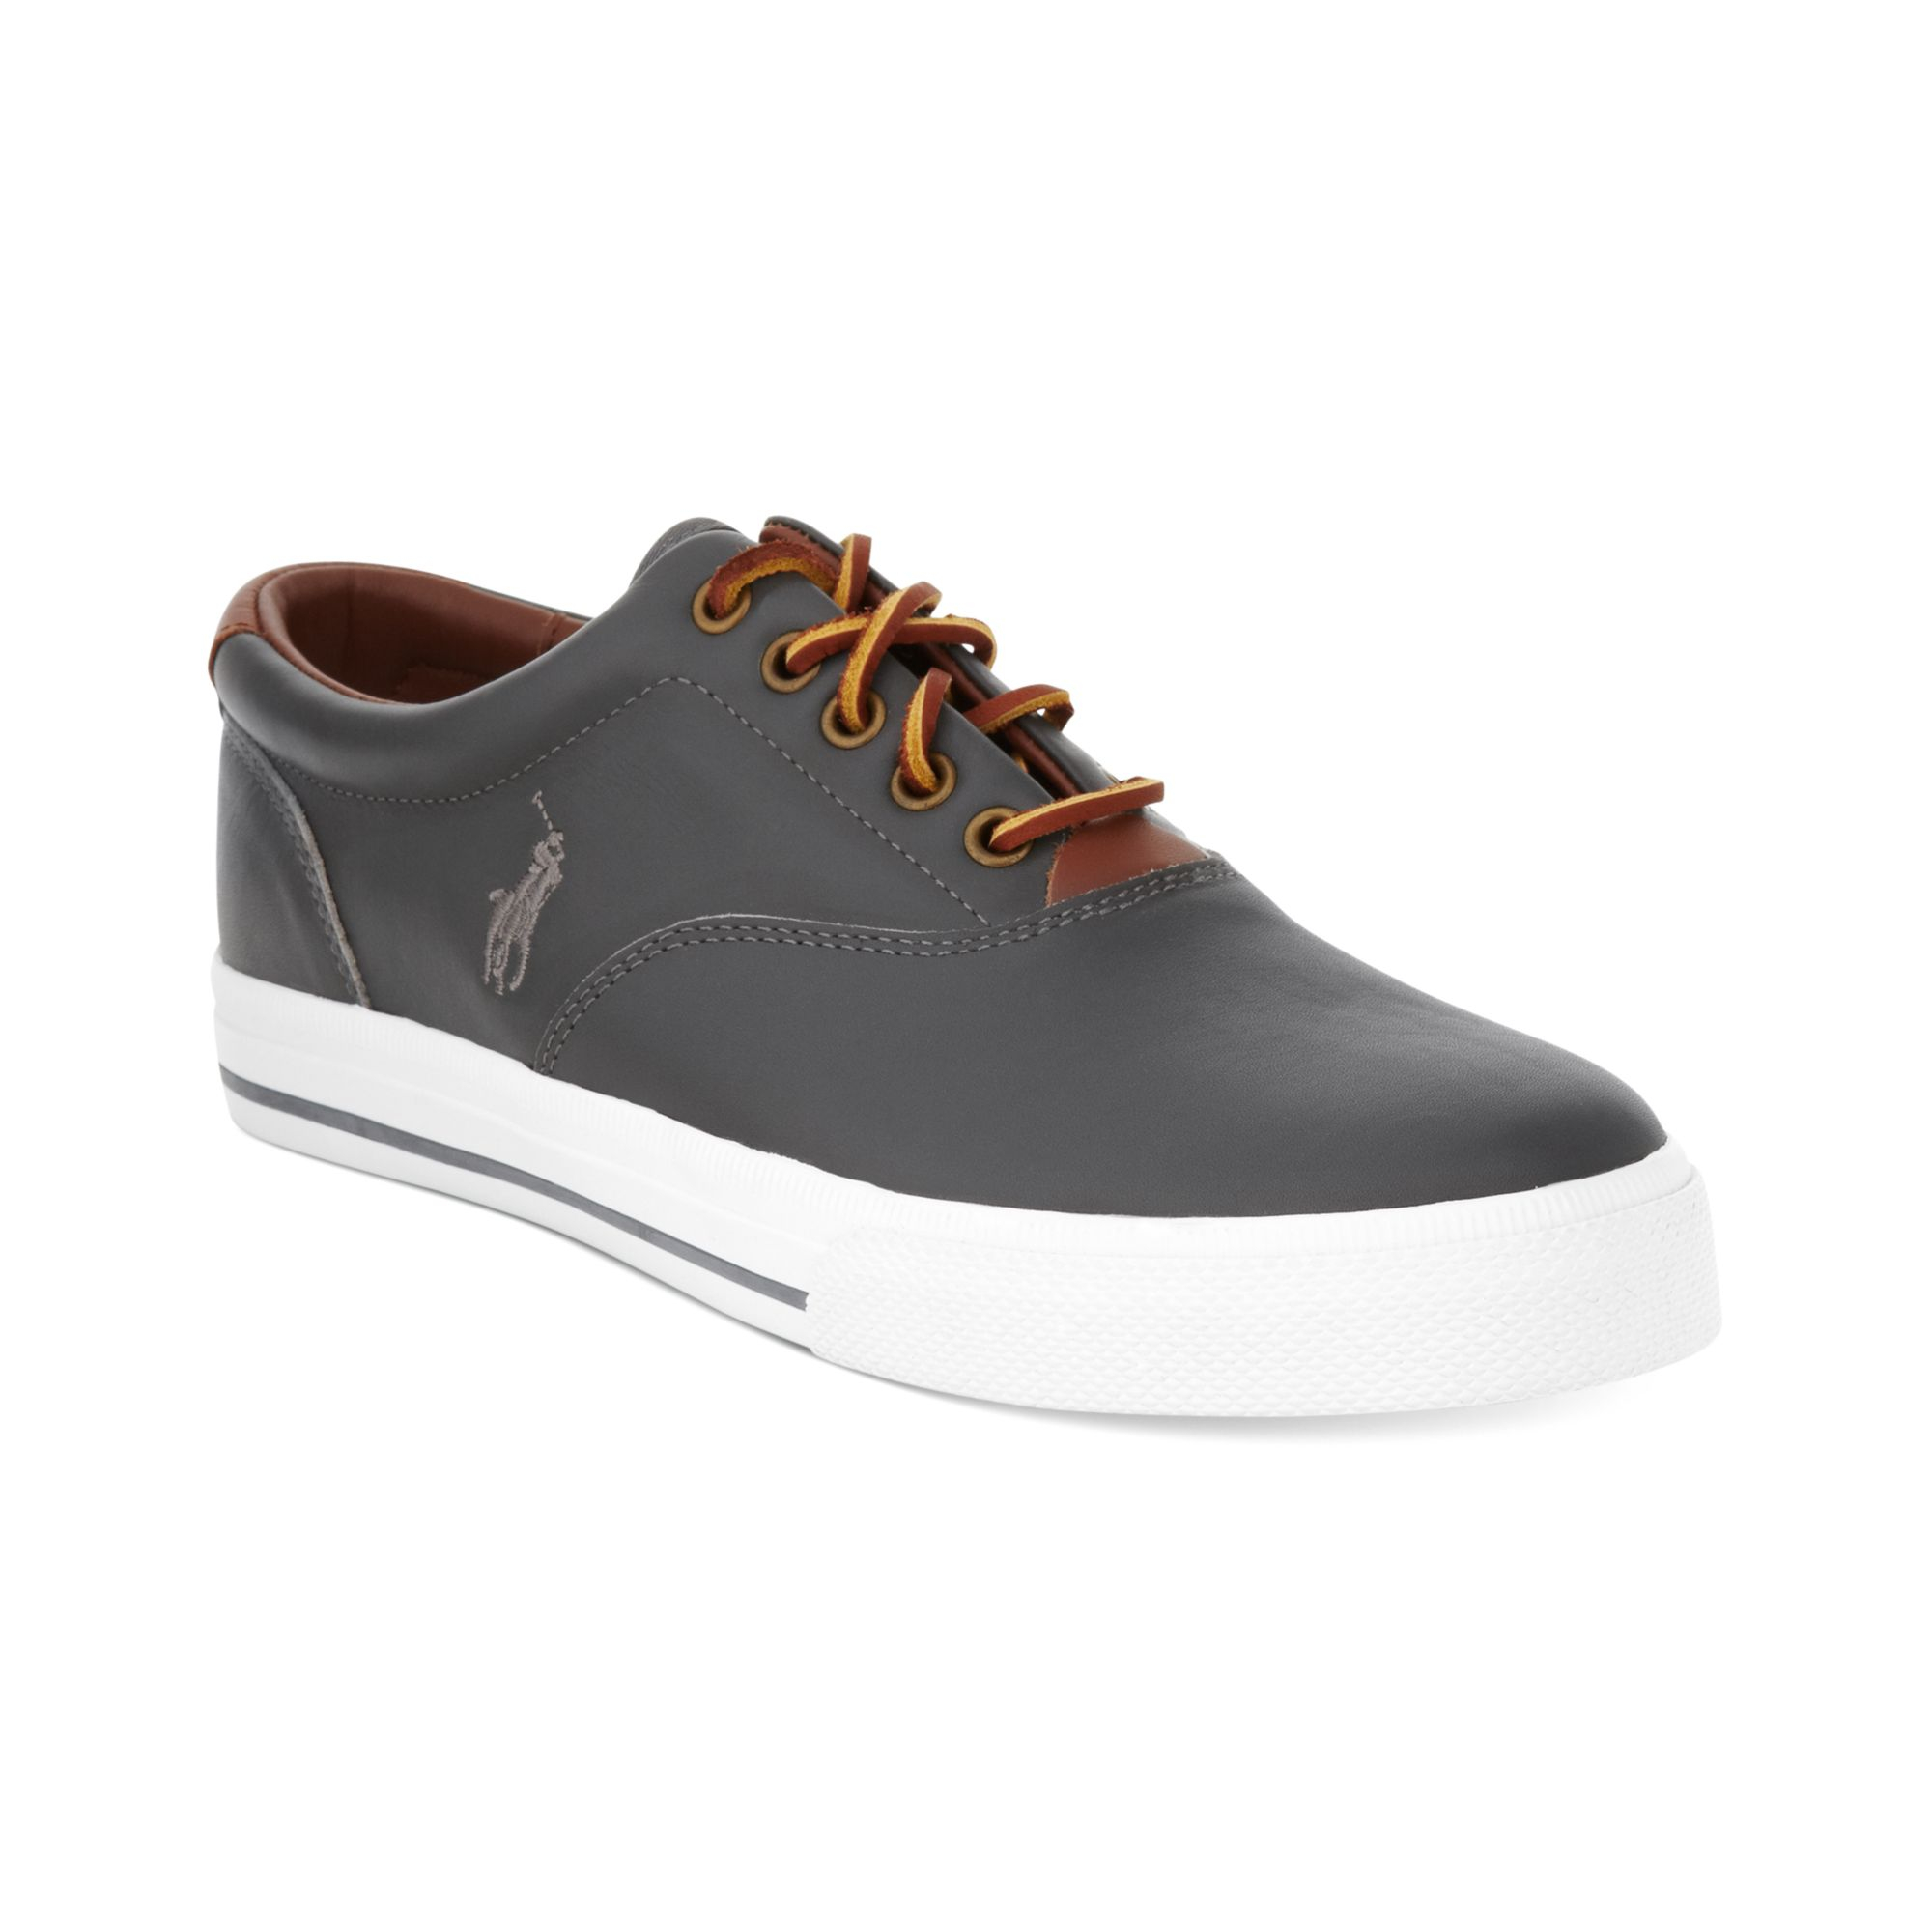 polo ralph lauren vaughn leather sneakers in gray for men. Black Bedroom Furniture Sets. Home Design Ideas